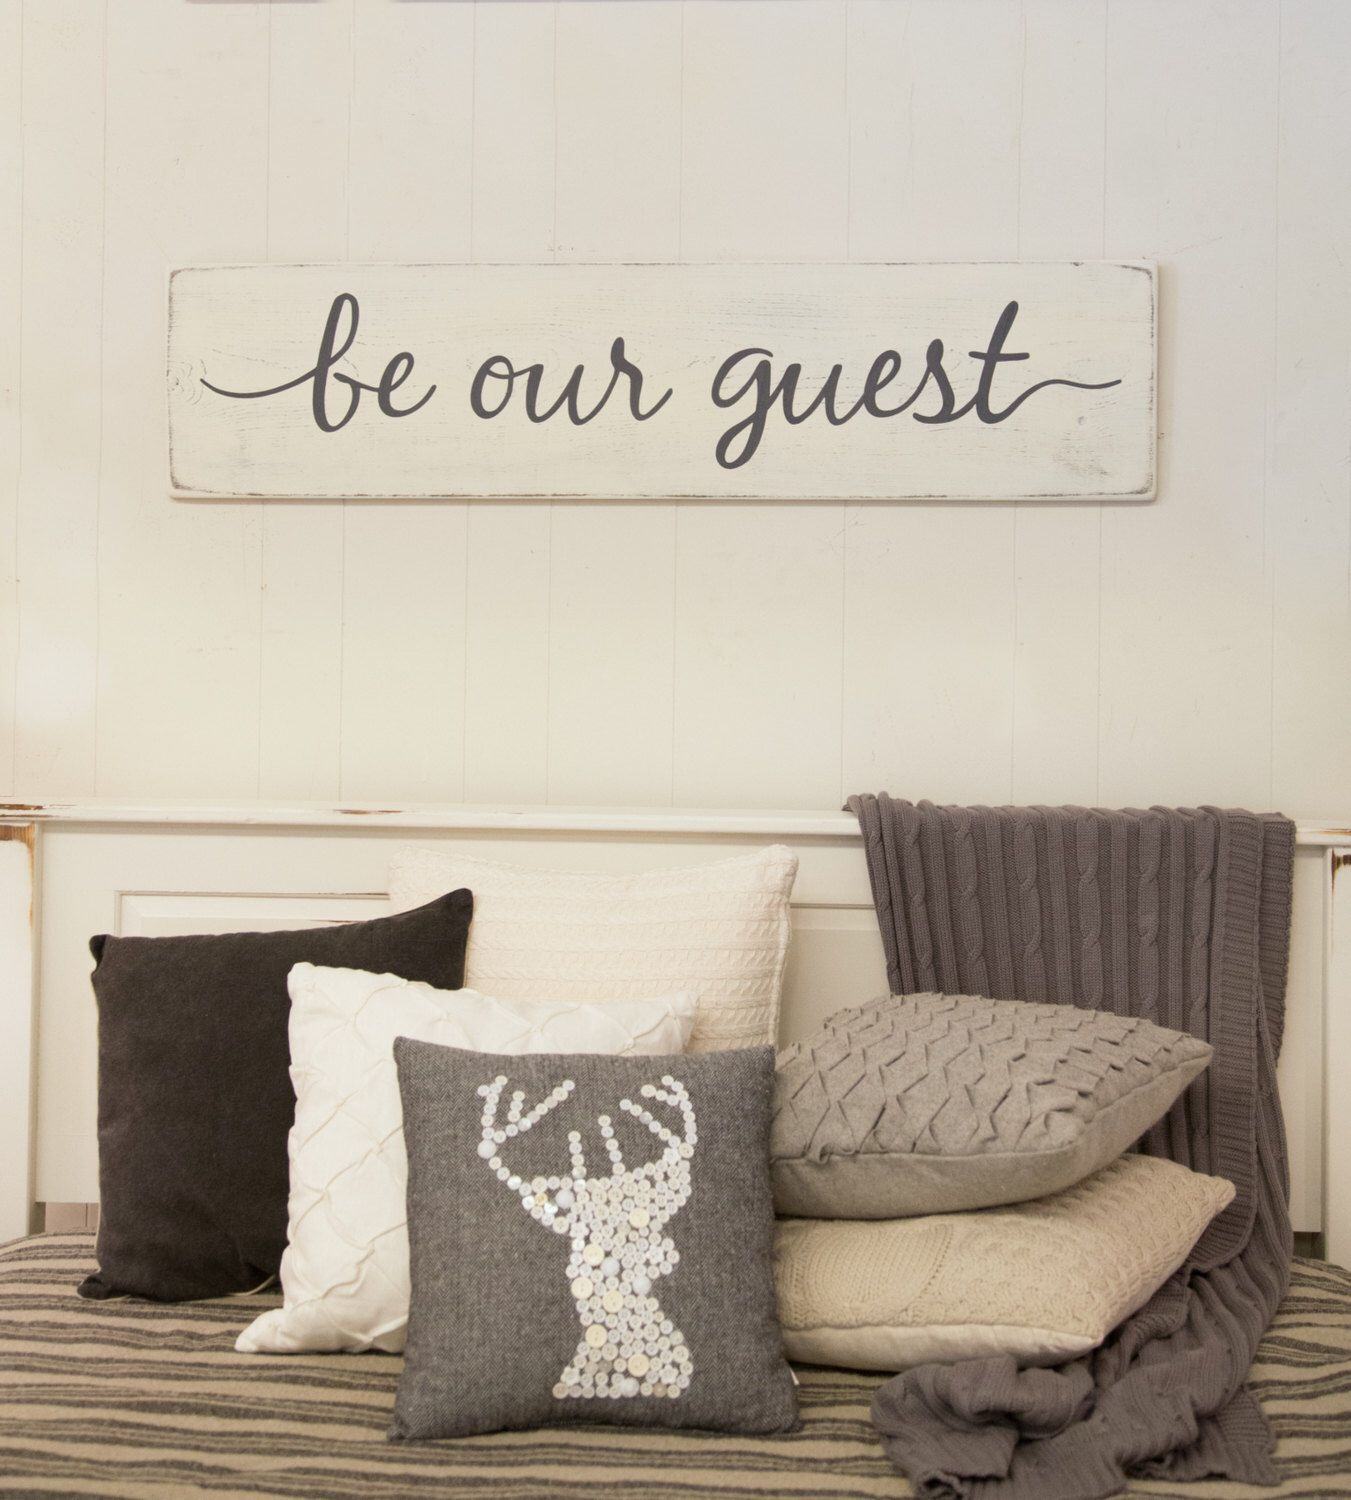 Guest Room Sign Decor Amazing Be Our Guest Sign  Guest Room Sign  Bedroom  Rustic Wood Sign Design Ideas